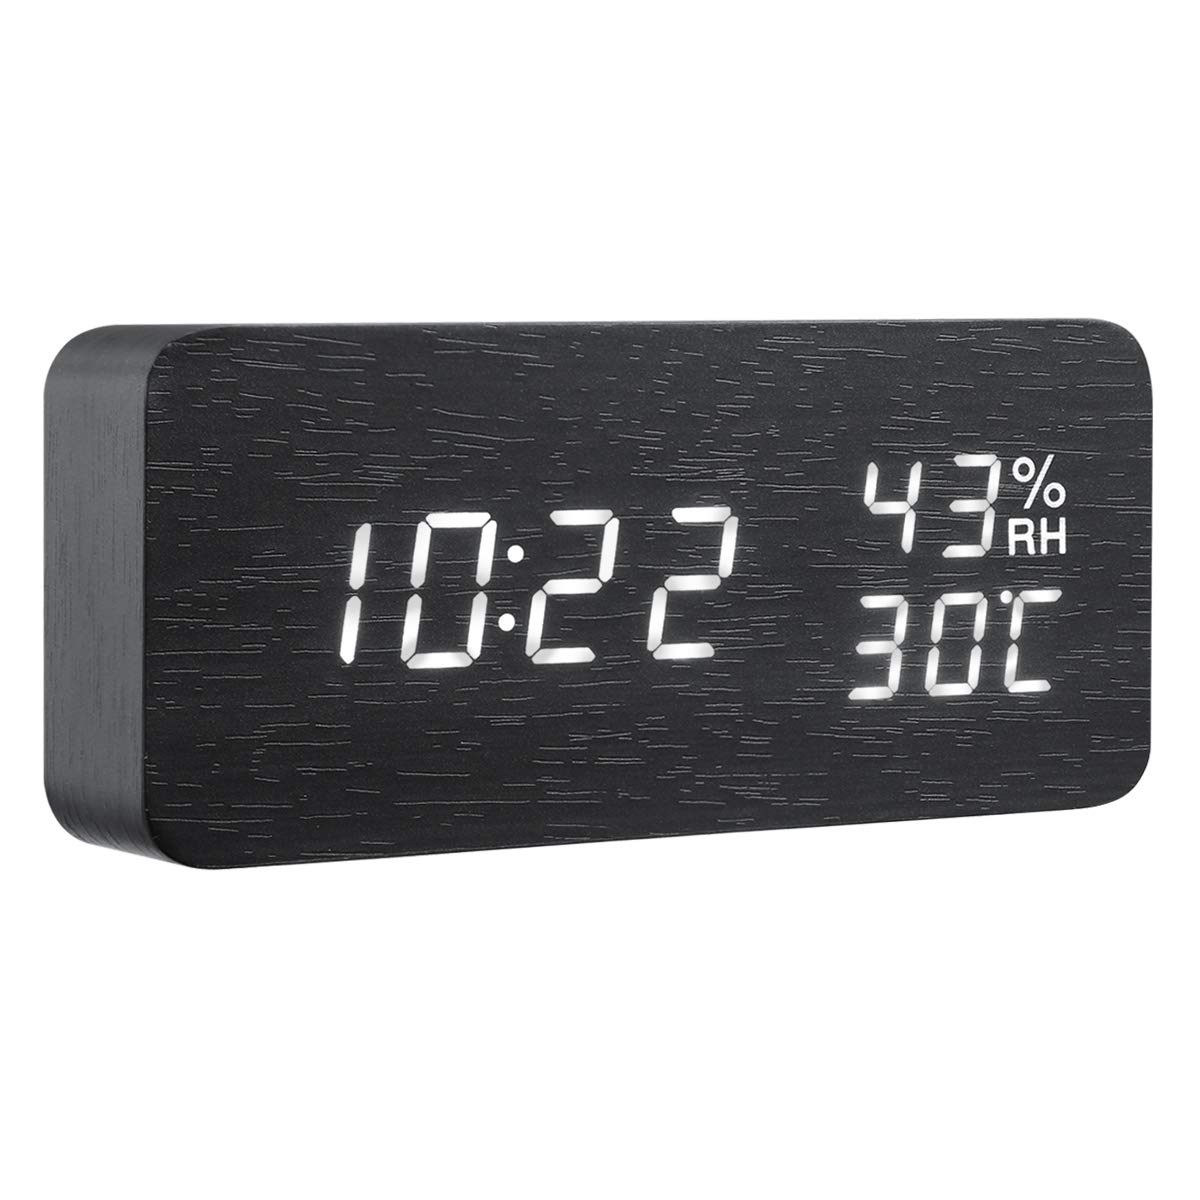 AMIR Alarm Clock, Wooden Digital Multi-Function Modern Cube LED Light, Smart Voice-Activated with 3 Alarm Sounds, Display Date Temperature & Humidity for Home, Kitchen, Bedroom (Black)